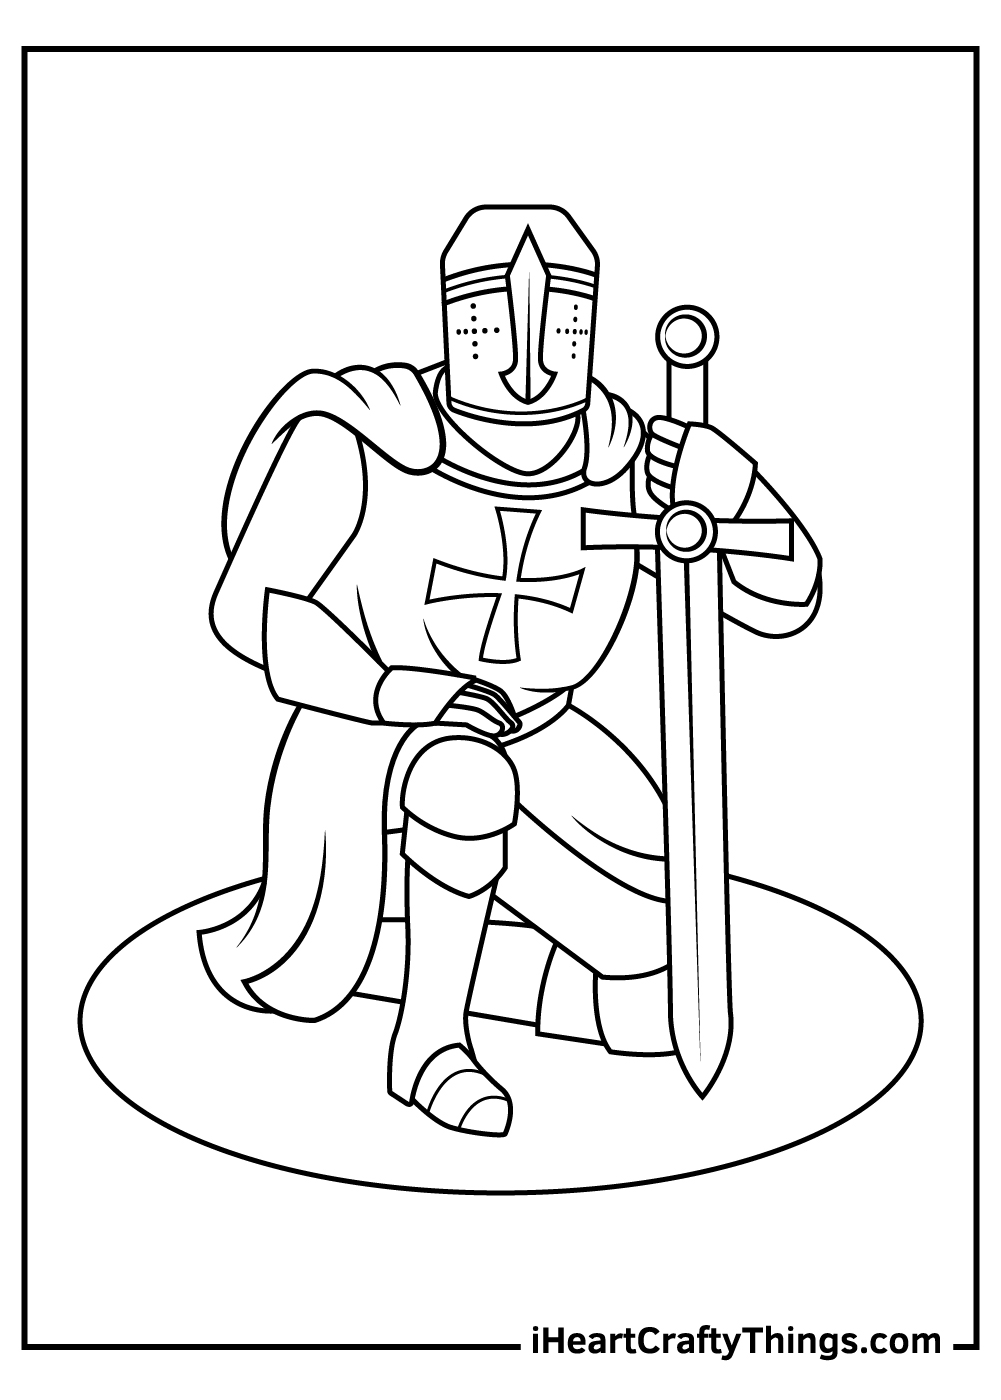 cool medieval ages dark knight coloring pages